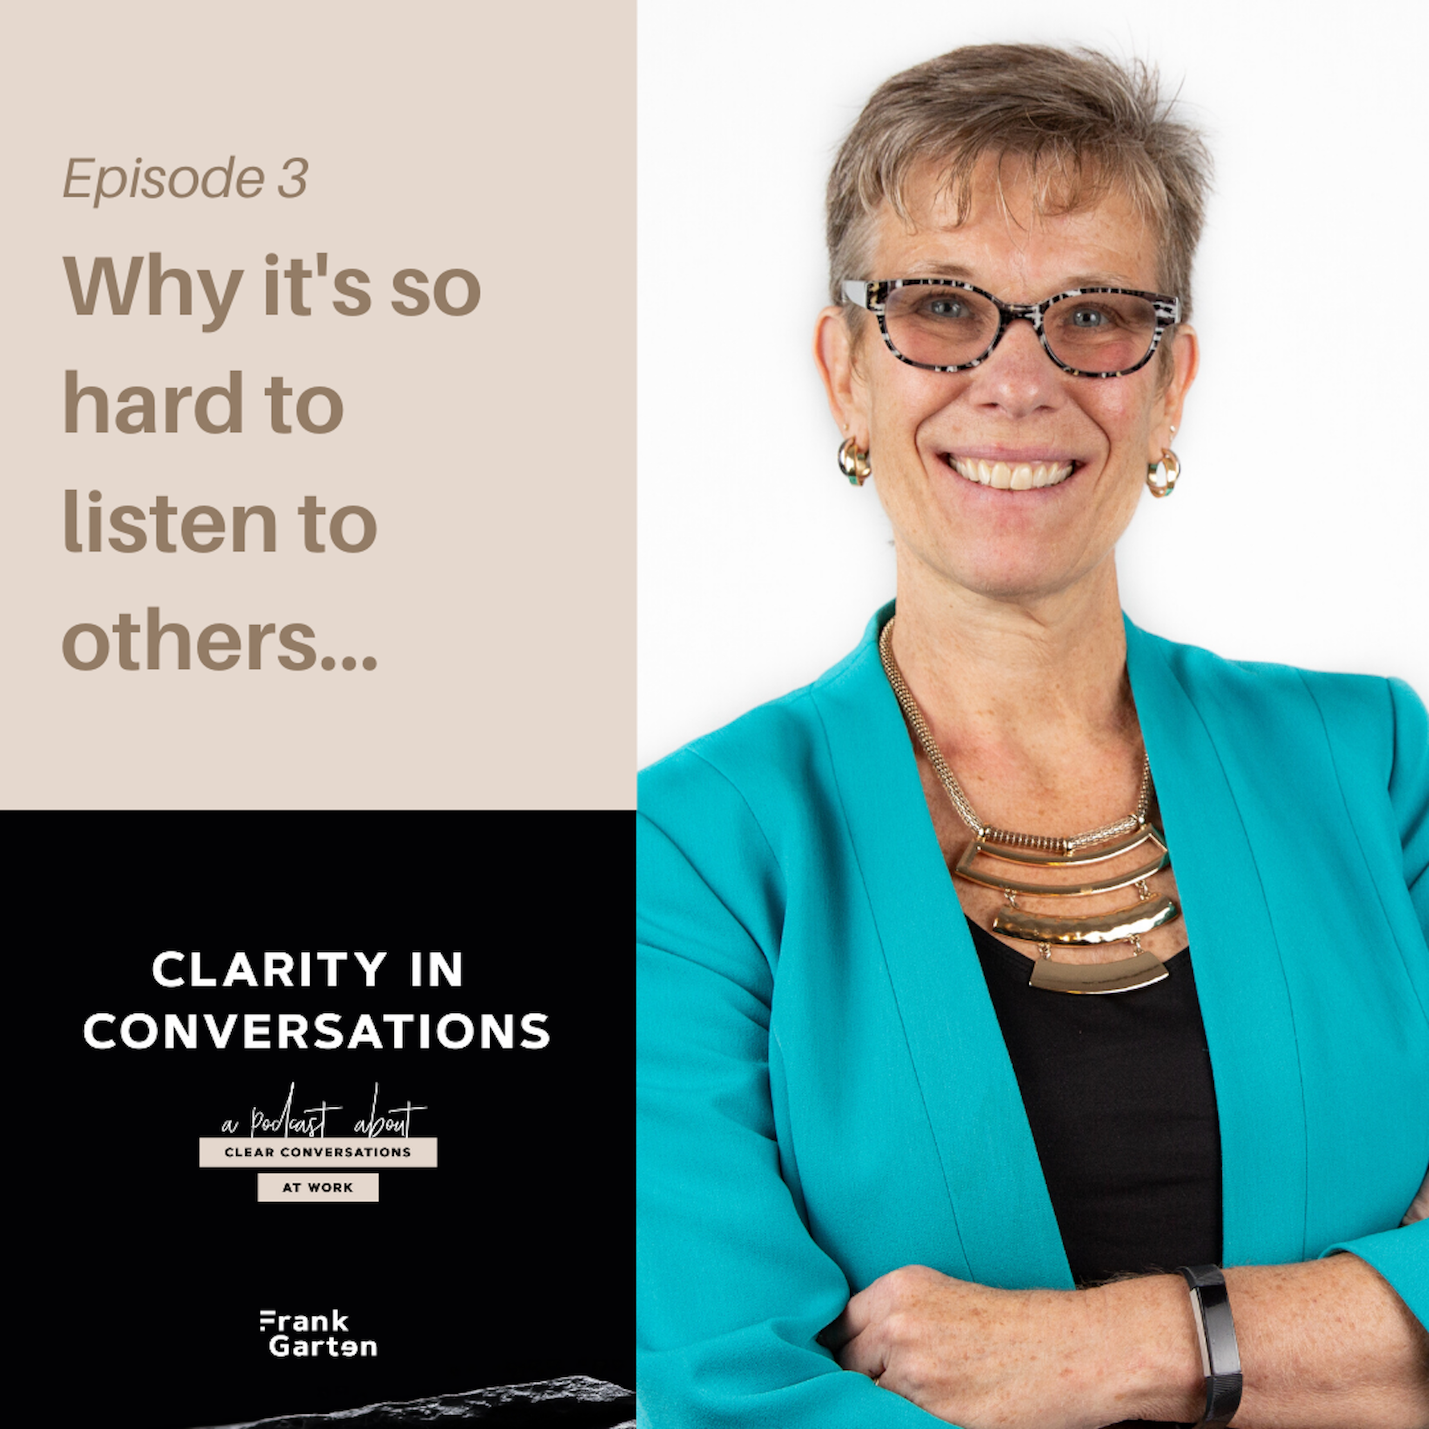 Why it's so hard to listen to others